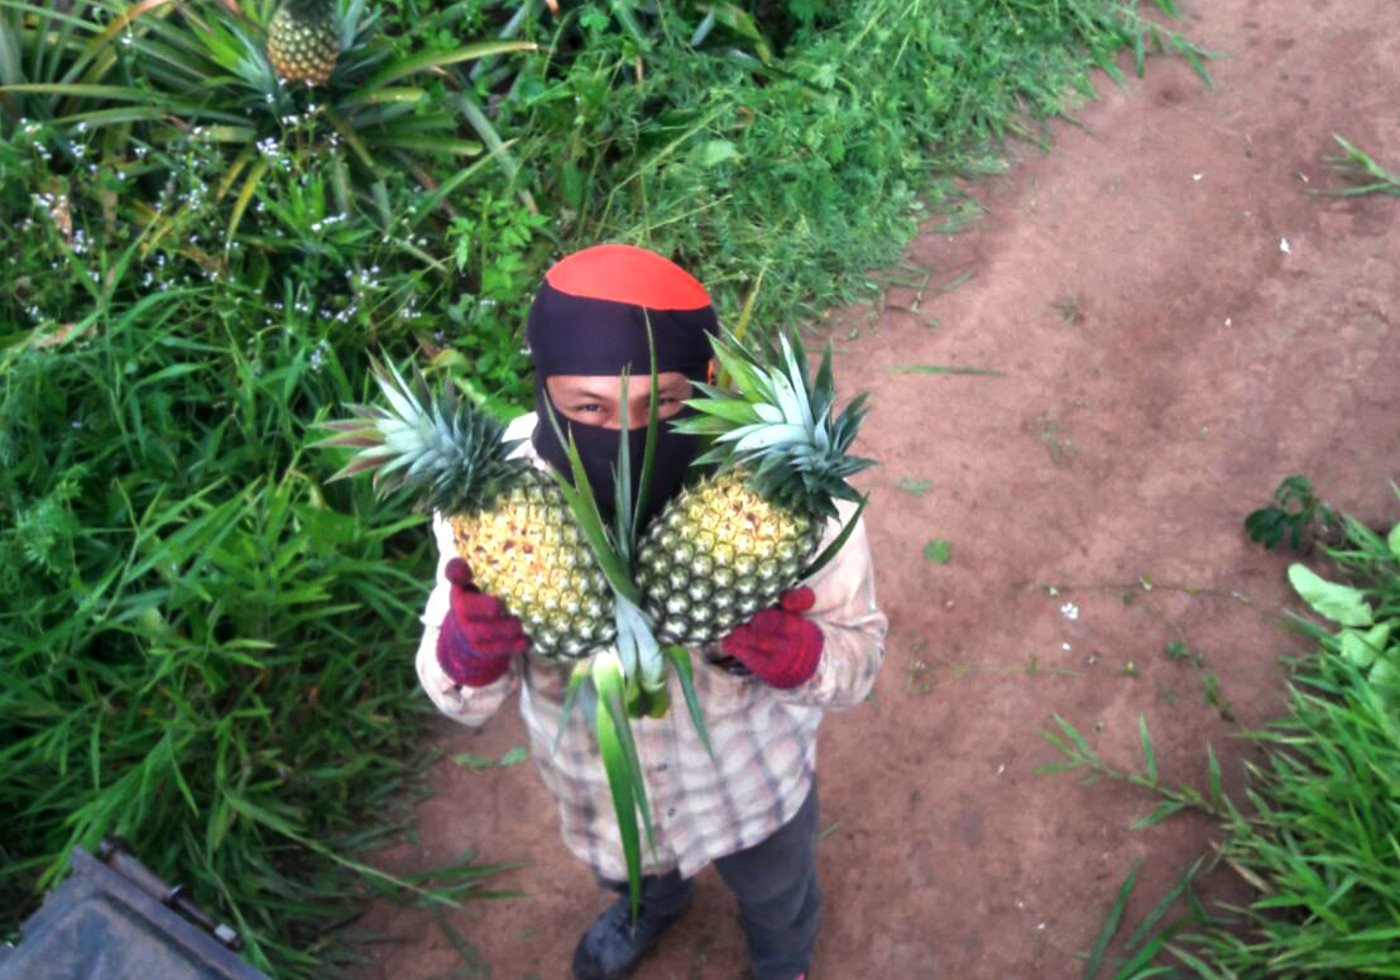 Harvesting of pineapple